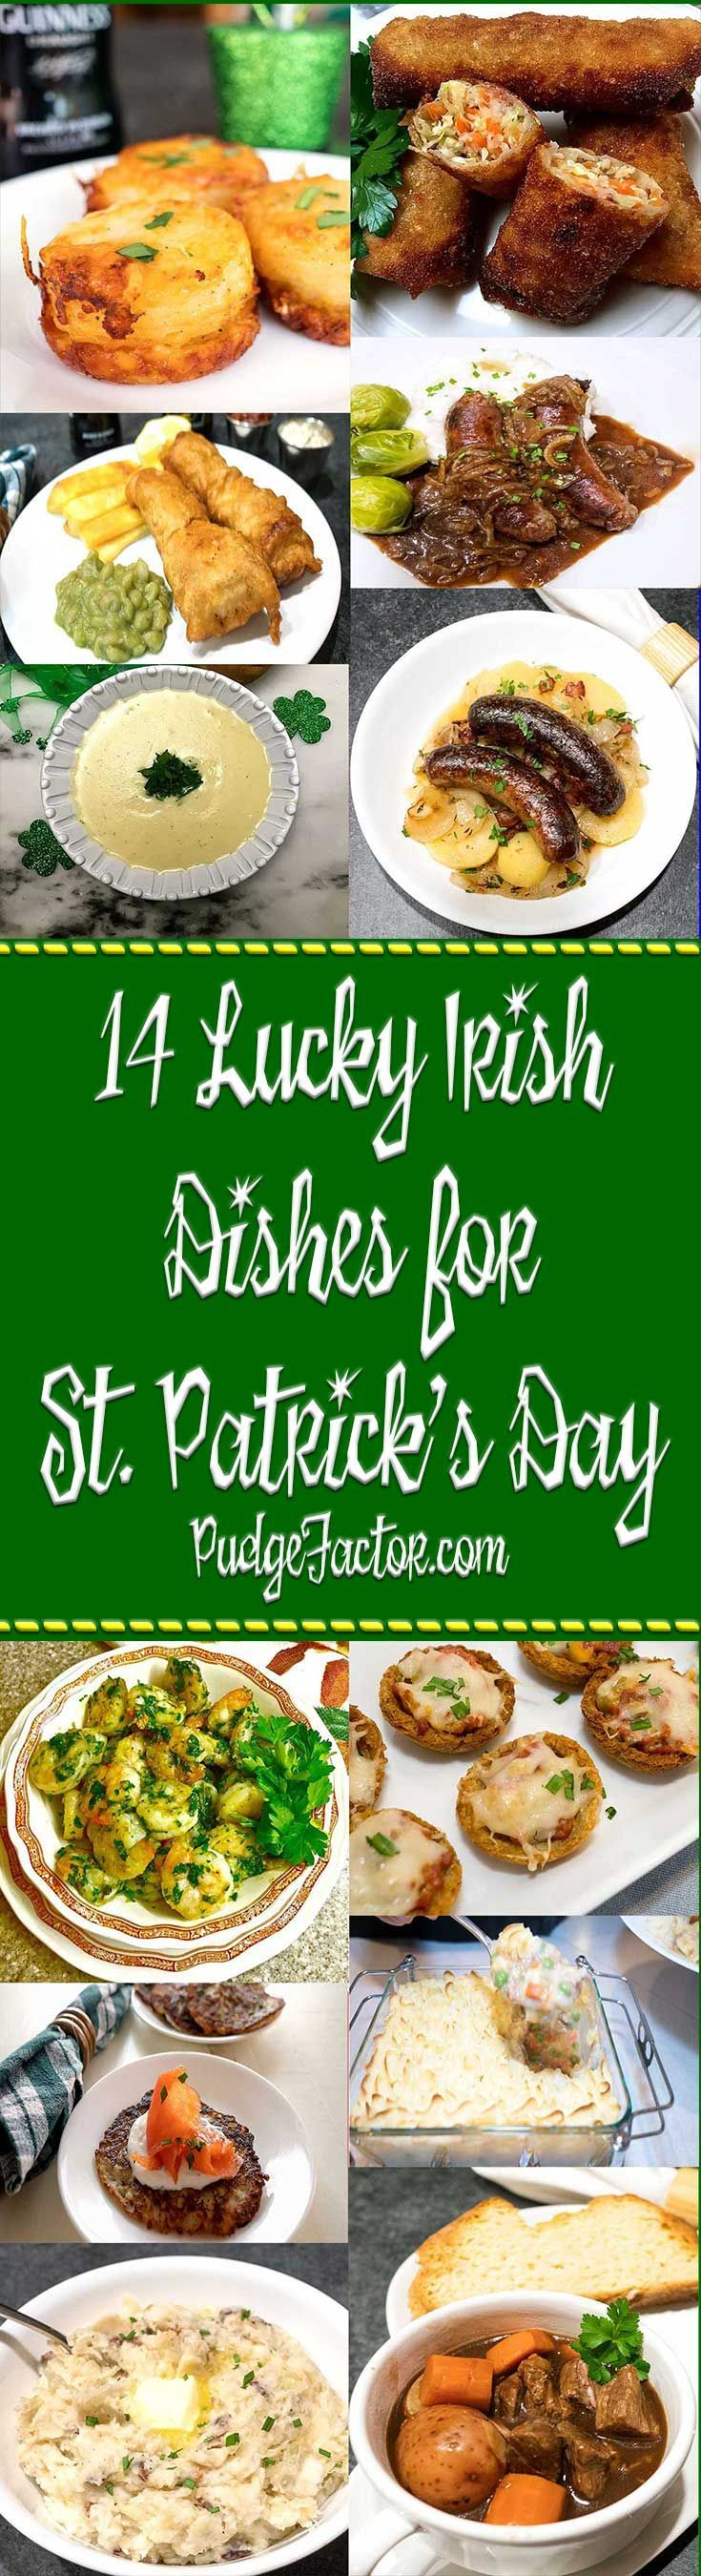 St. Patrick's Day is just around the corner. I teamed up with Grits and Pinecones to bring you 14 Lucky Irish Dishes certain to put a jig in your step. via @c2king